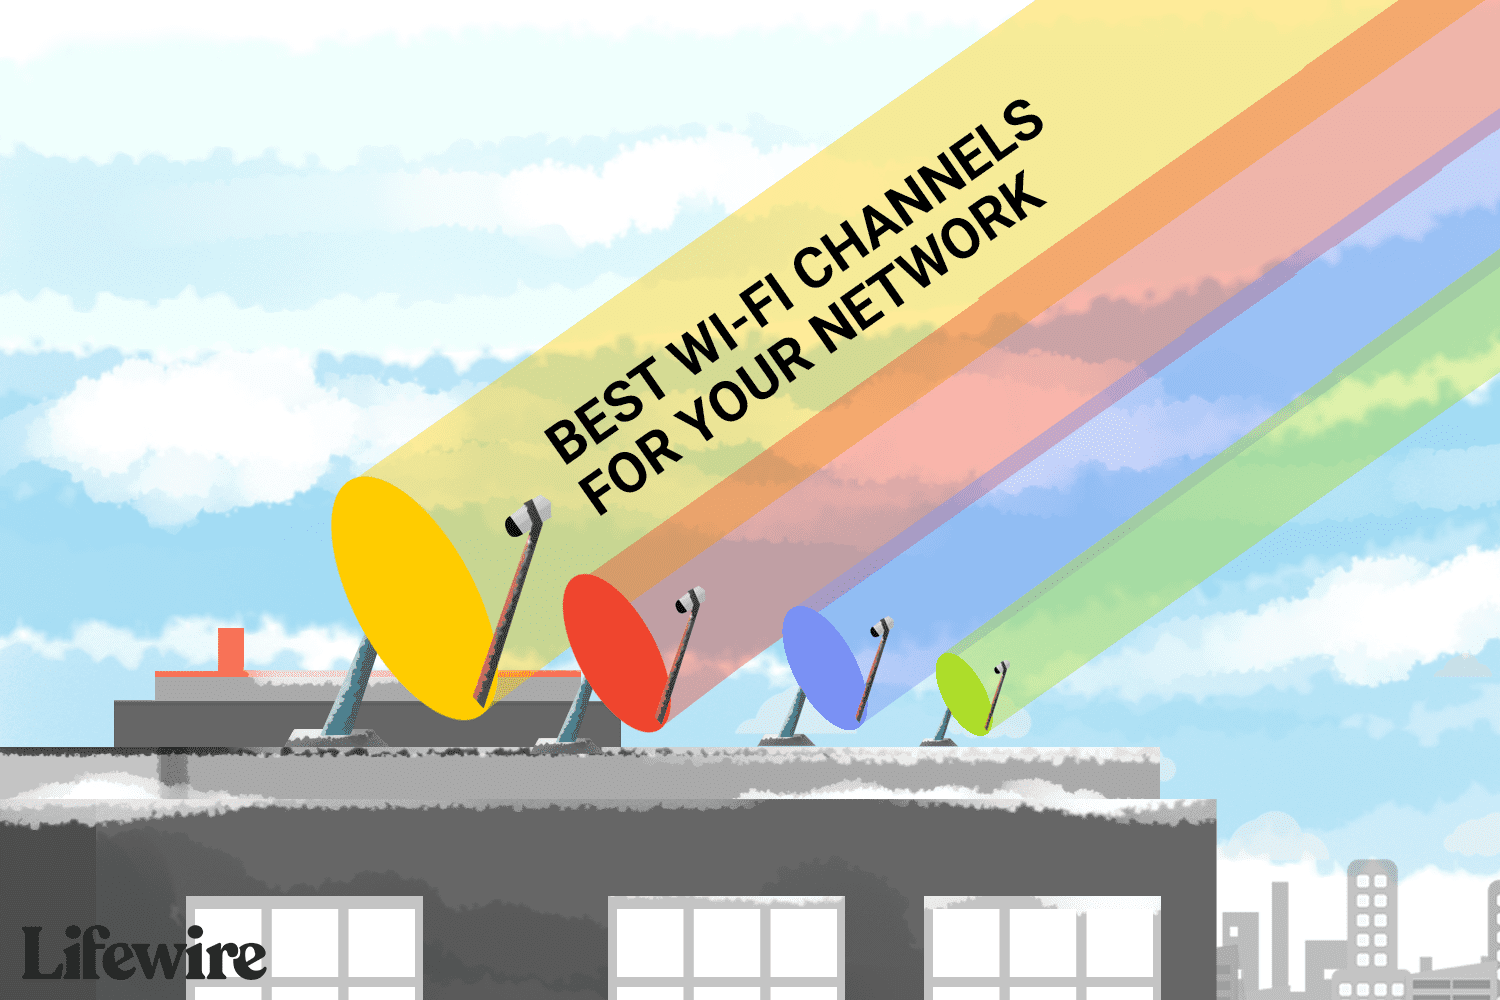 Different Wi-Fi channels that can be used on a network.